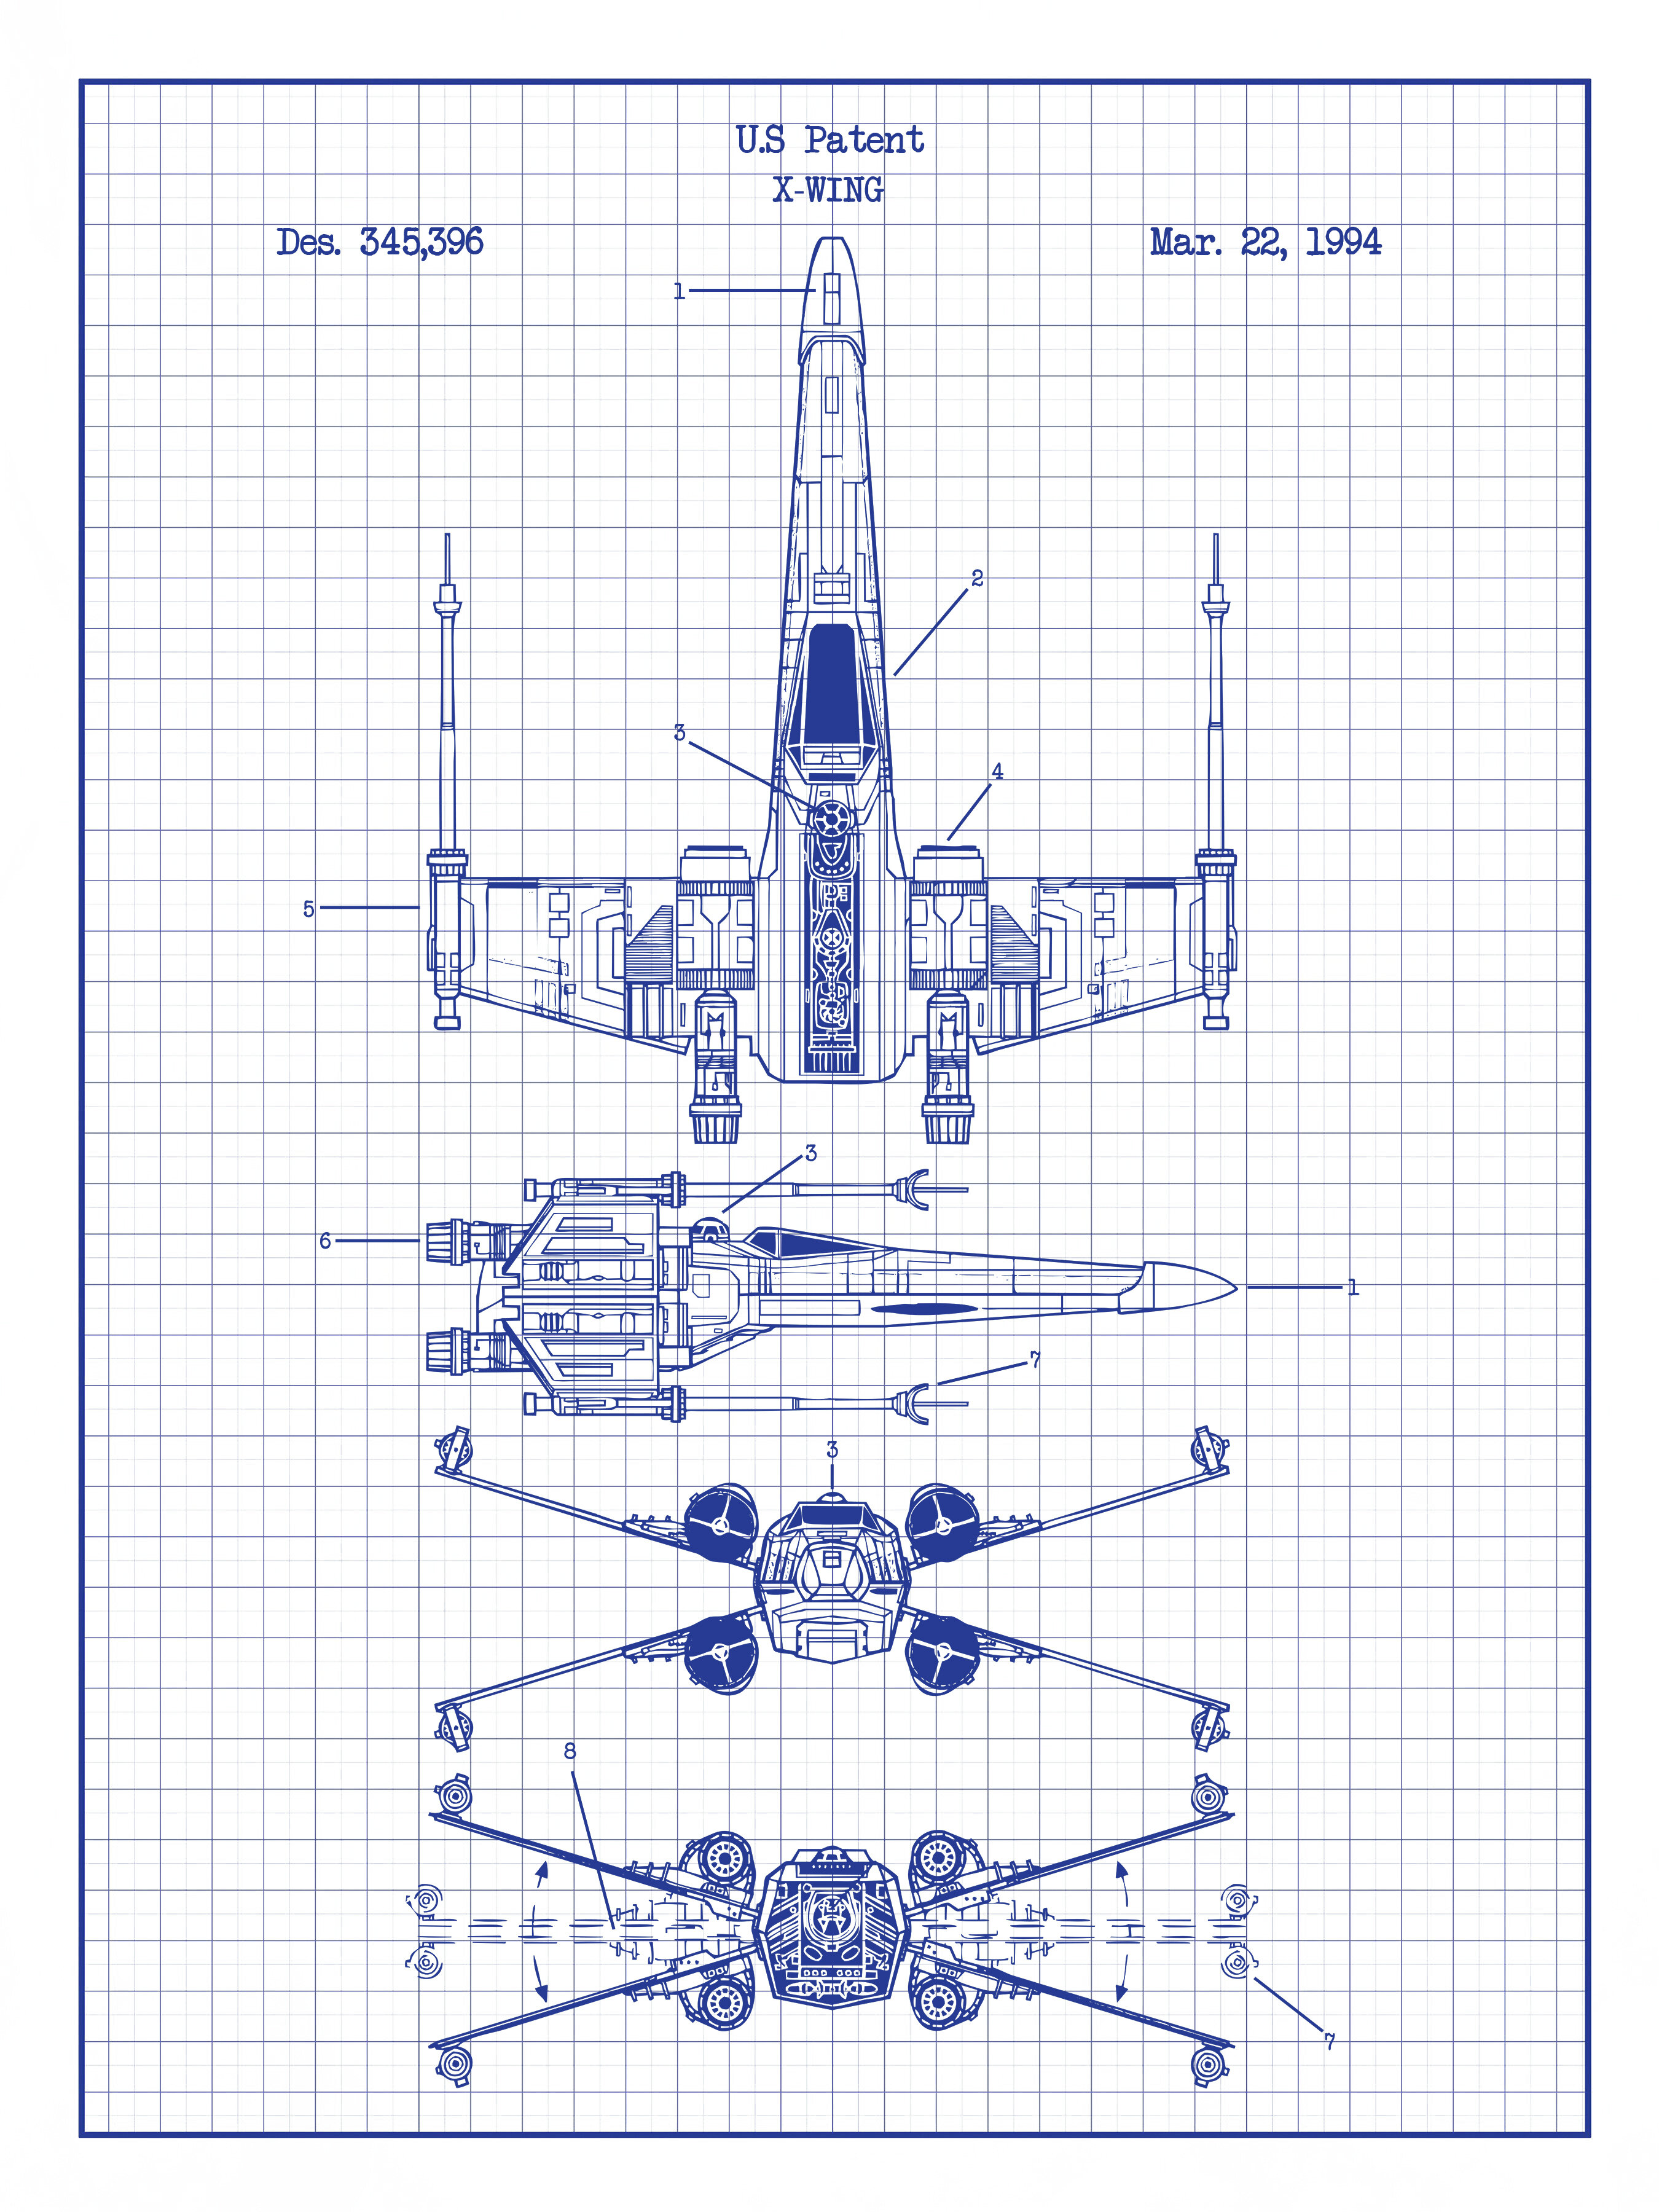 'Star Wars X-Wing 2' Blueprint Graphic Art Print on b-wing schematics, at-at schematics, a wing fighter schematics, tie interceptor schematics, minecraft schematics, y-wing schematics, halo warthog schematics,